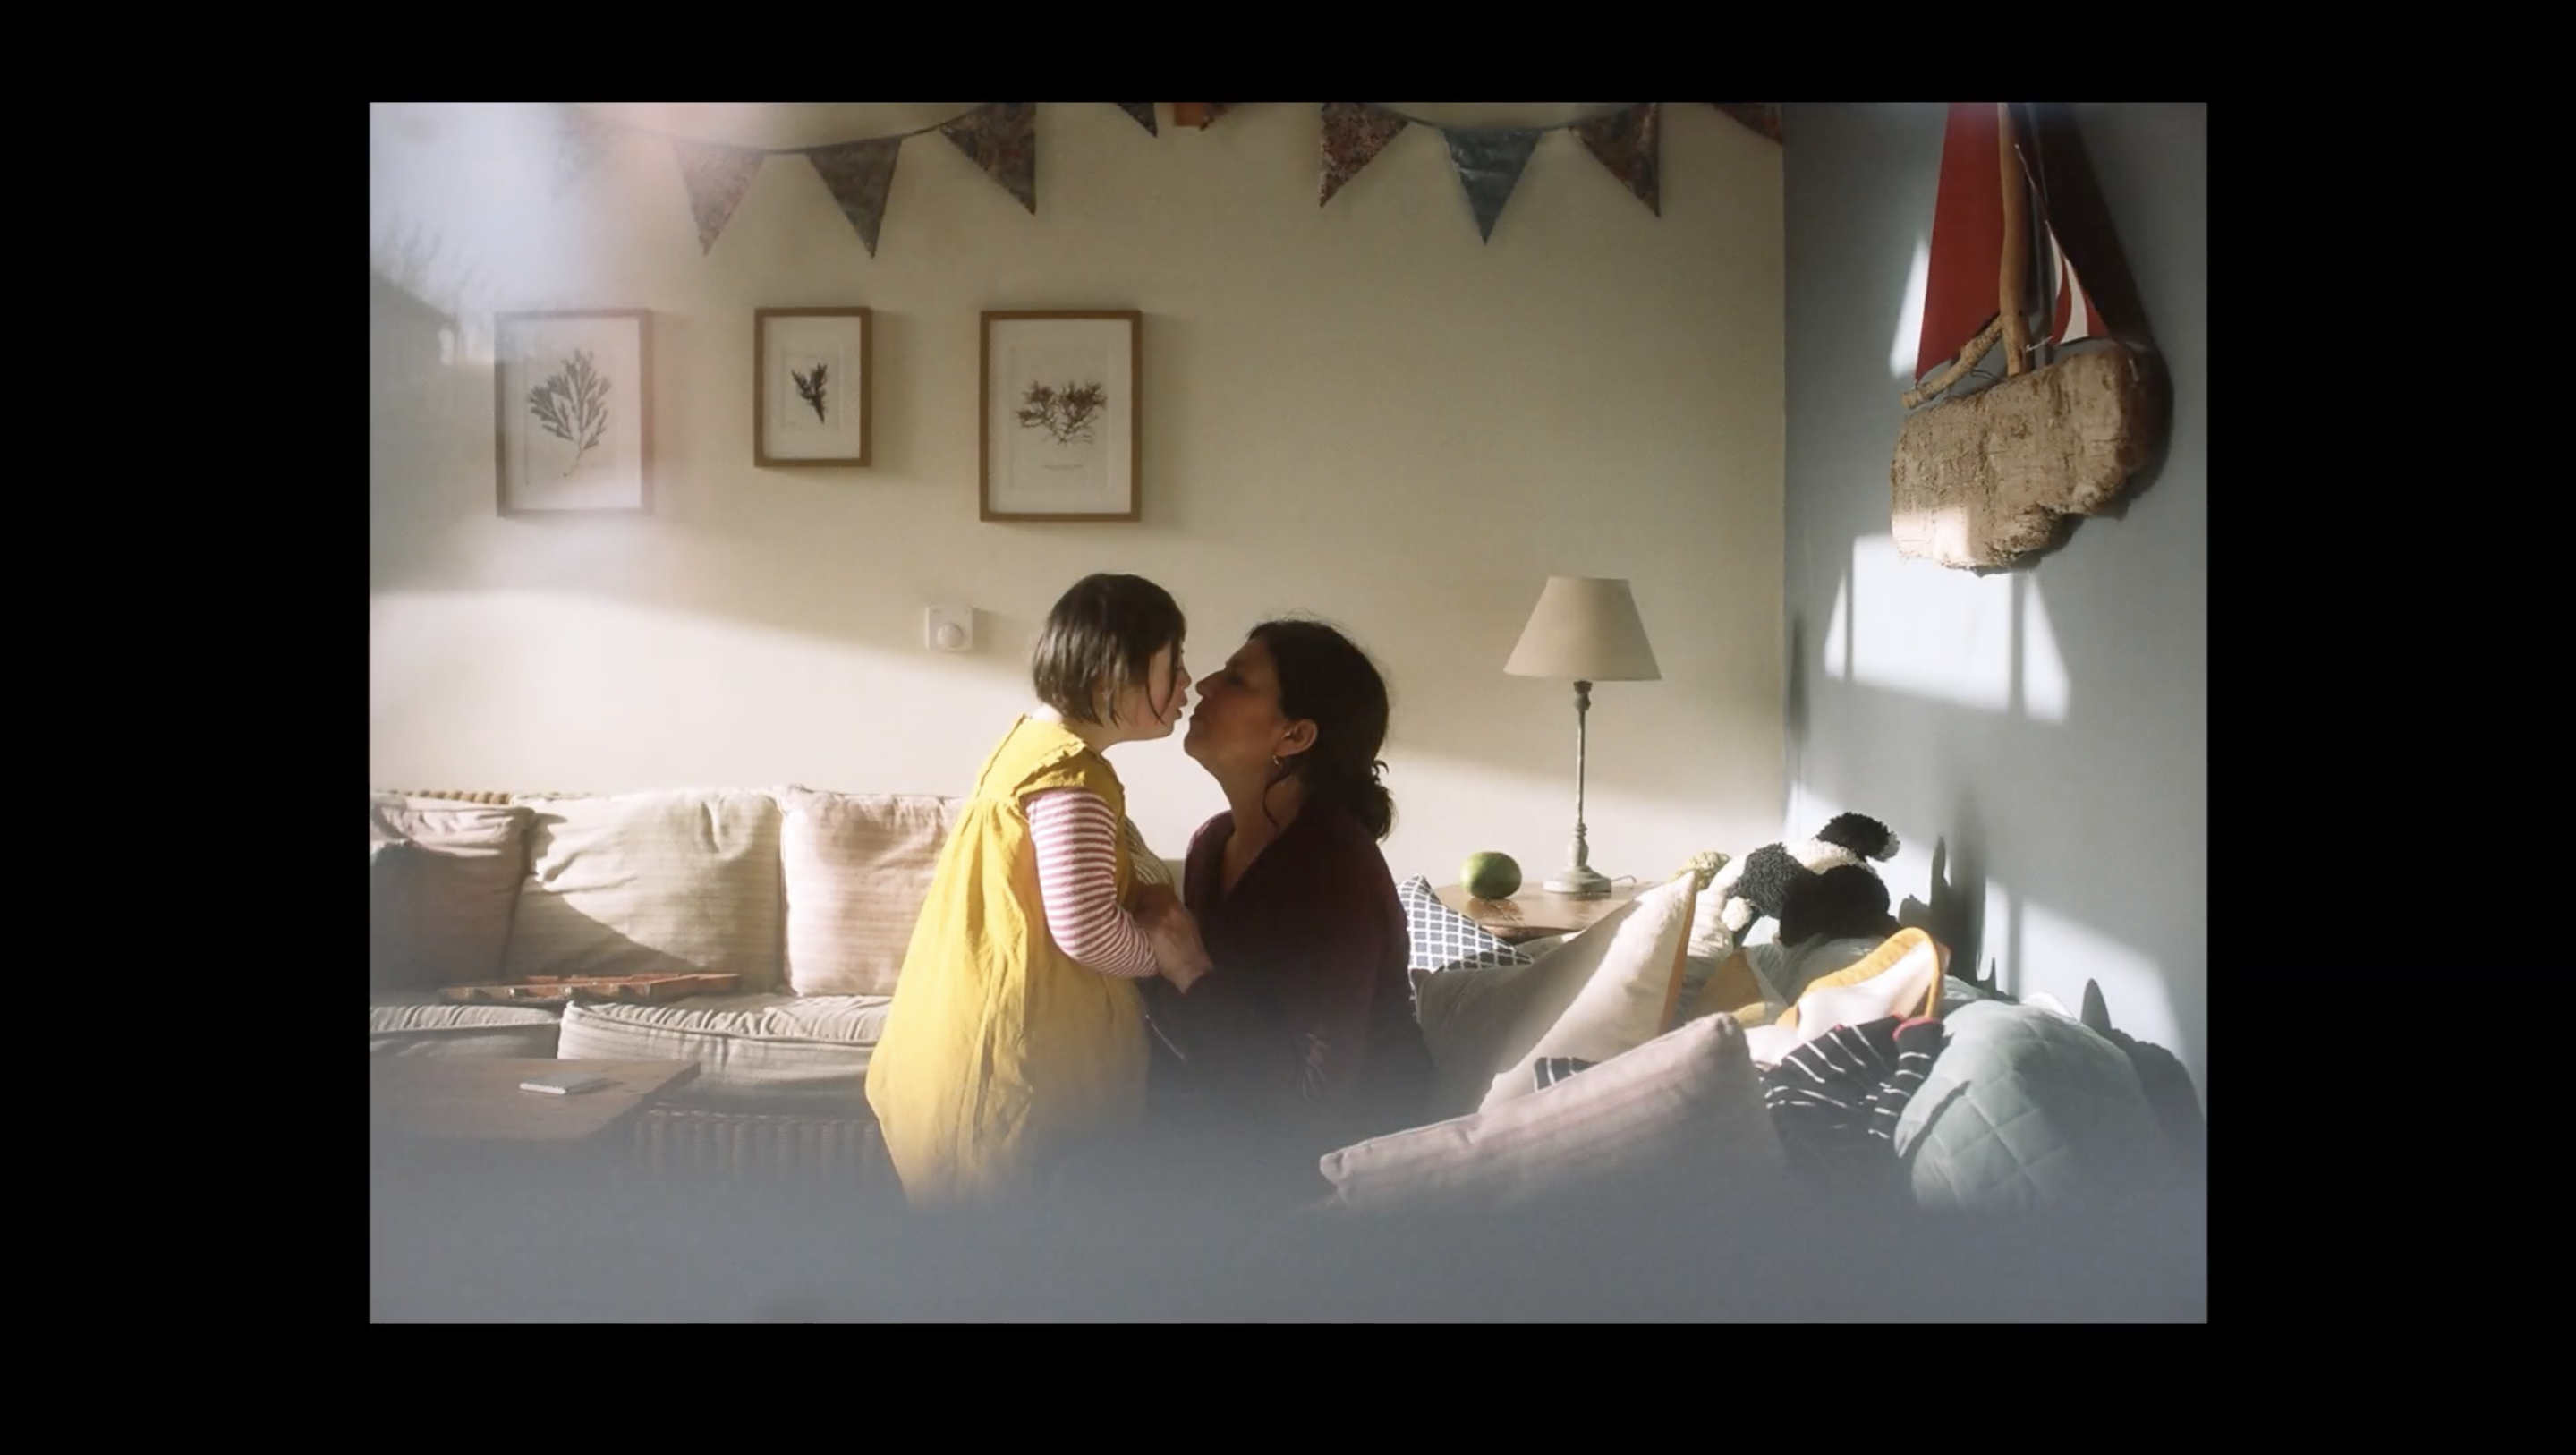 Airbnb's latest campaign uses real rental properties as backdrops for each short film.